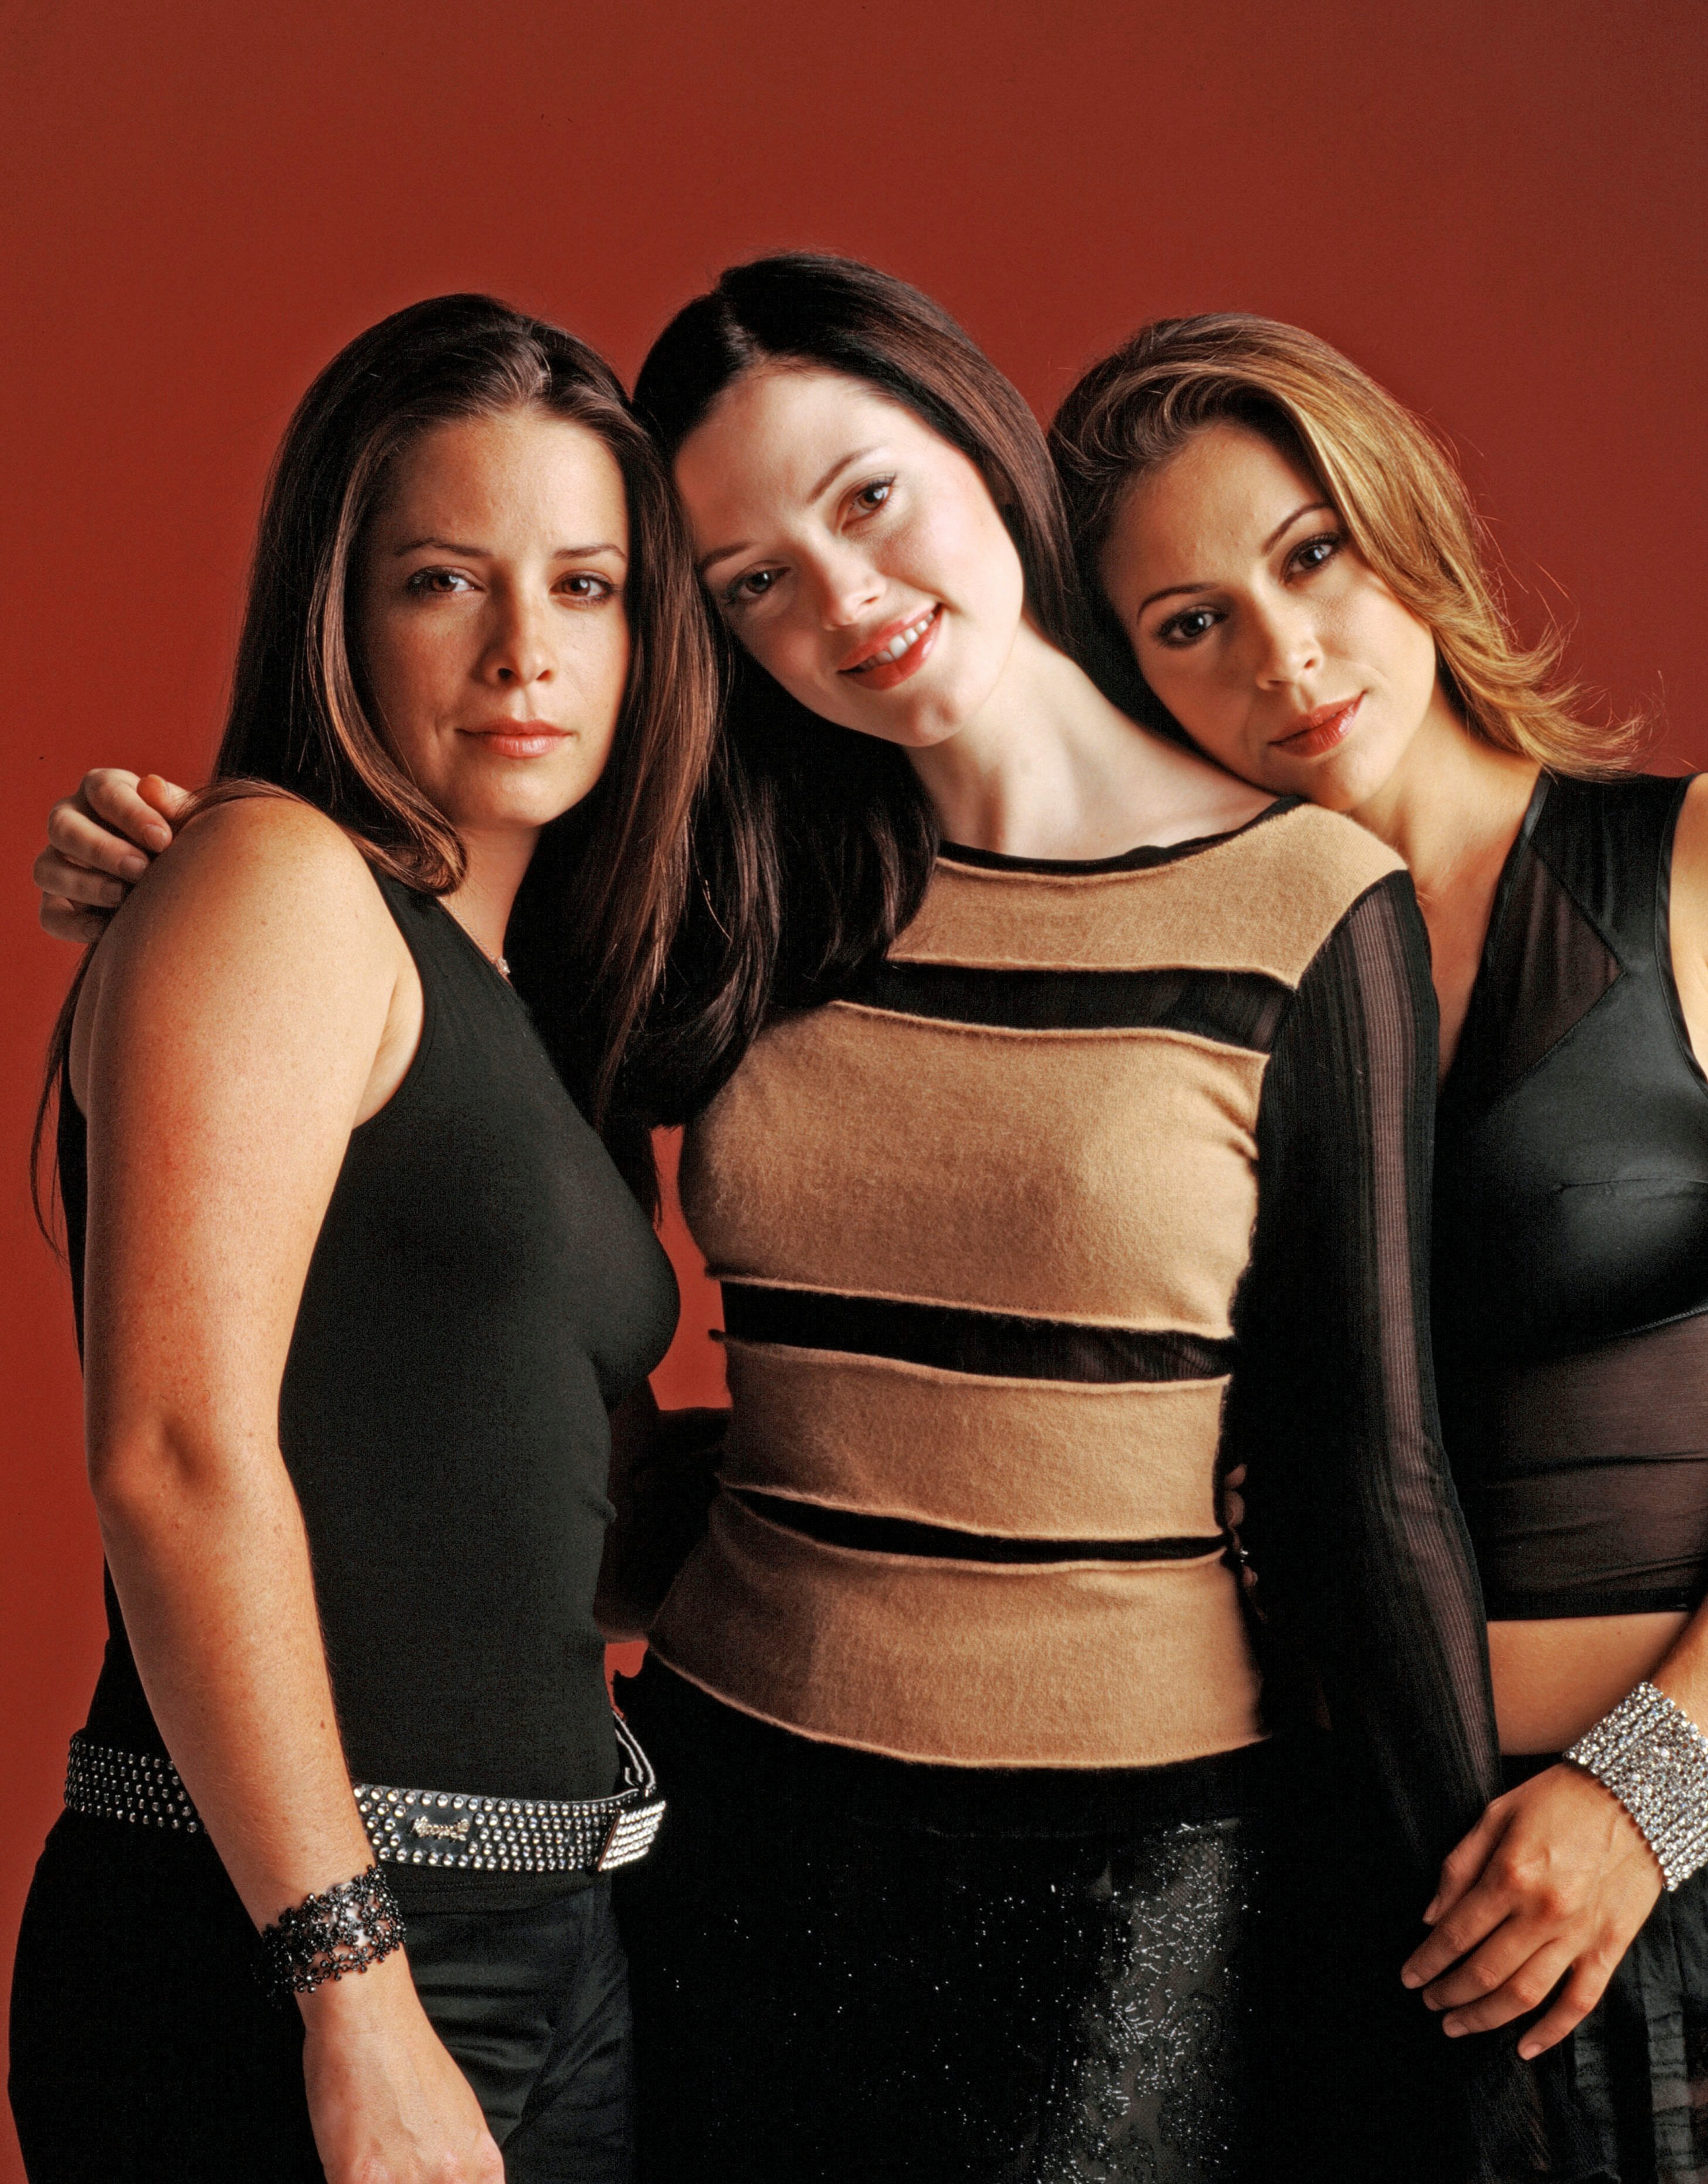 Charmed milano combs doherty mcgowan cuoco halliwell hot girl published 30 january 2013 at 2914 3727 in charmed altavistaventures Gallery